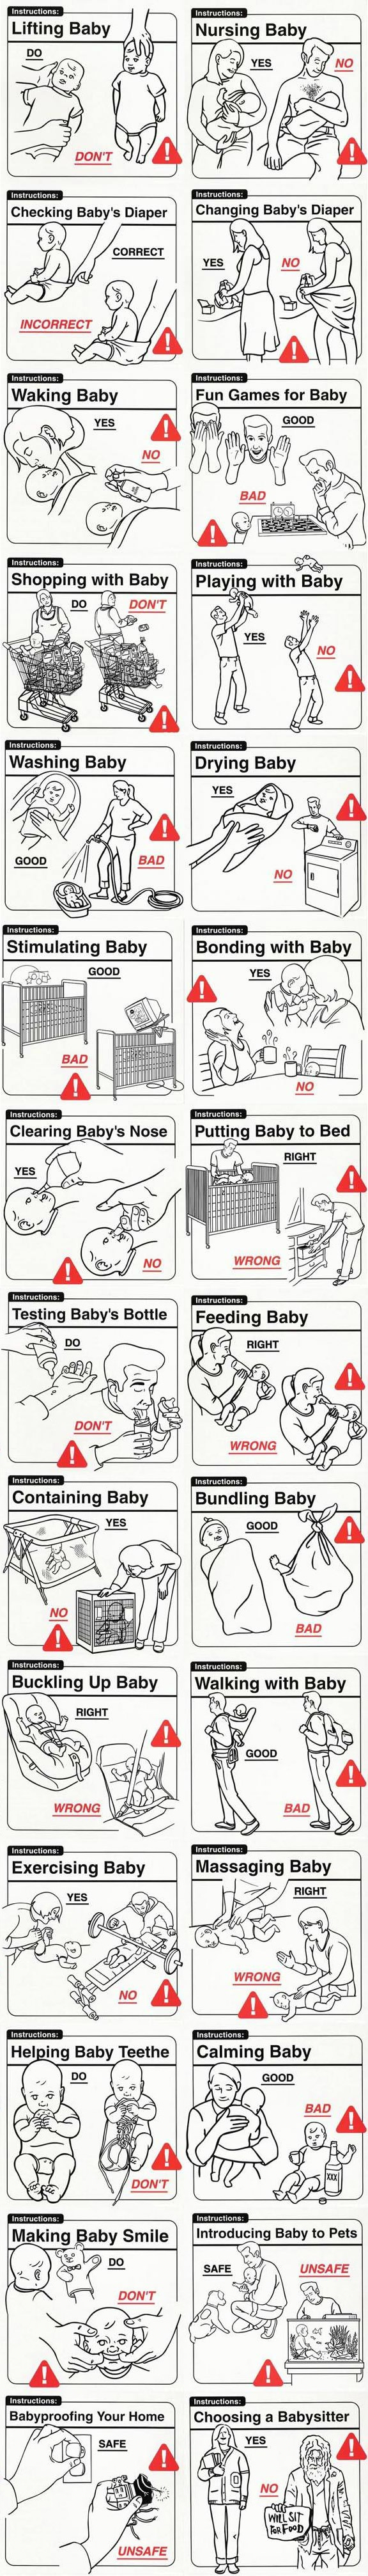 How to take care of your baby